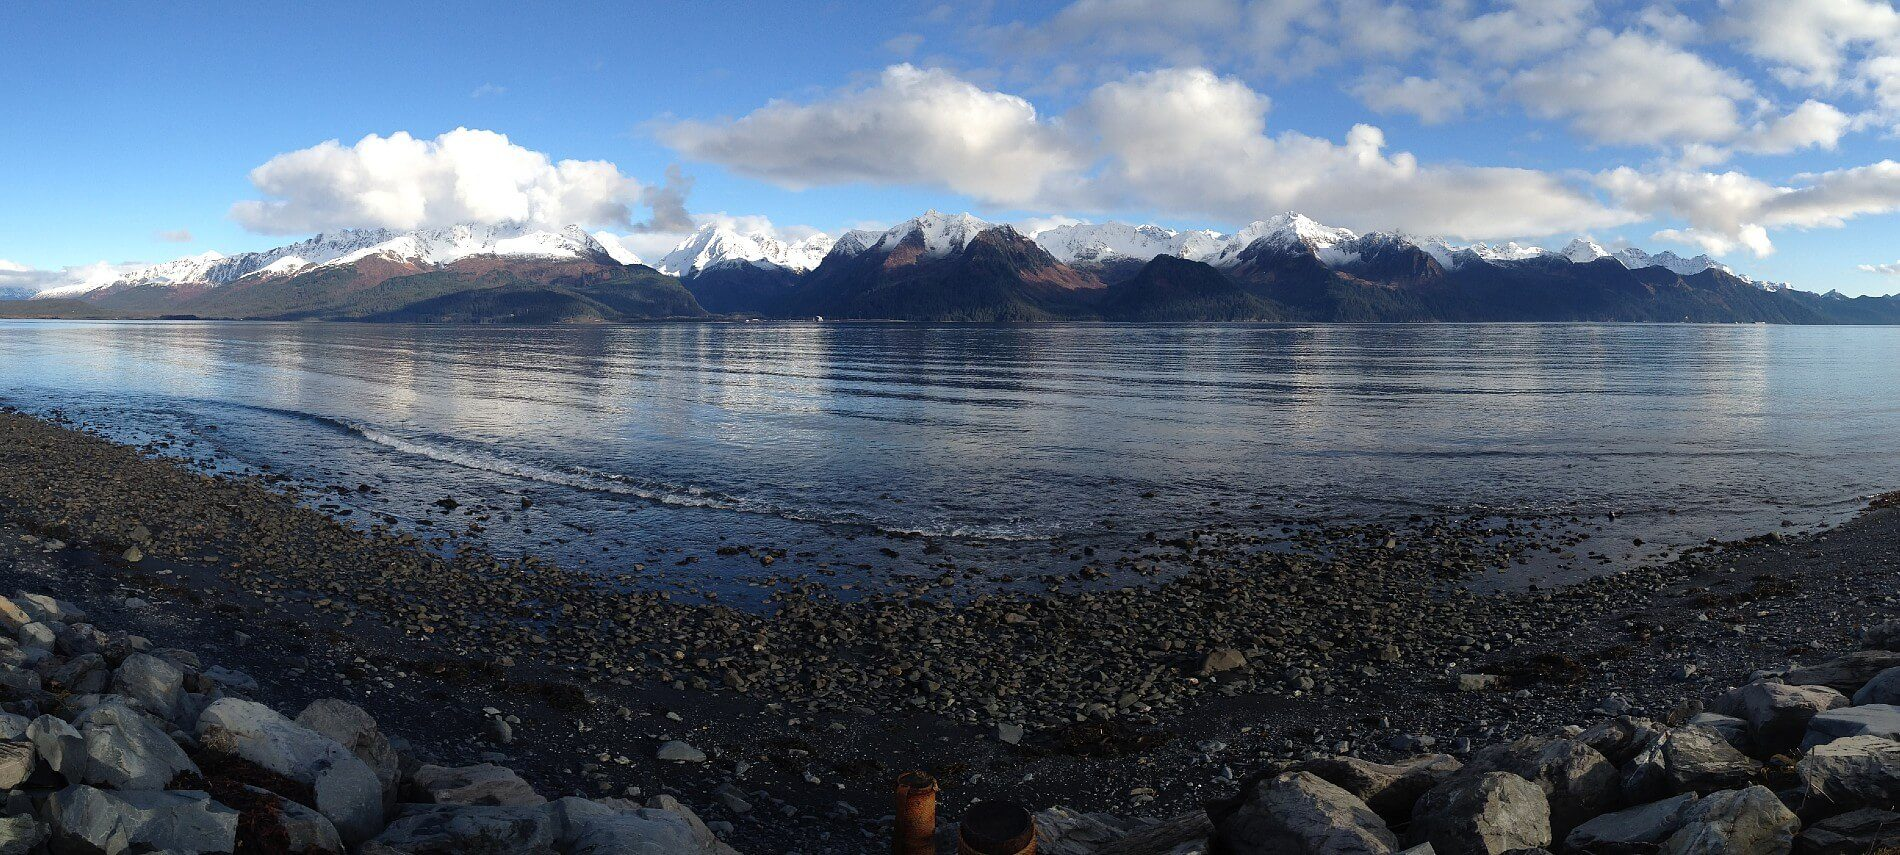 The edge of a rocky beach by a large calm bay surrounded by snow-capped mountains and clouds in a blue sky